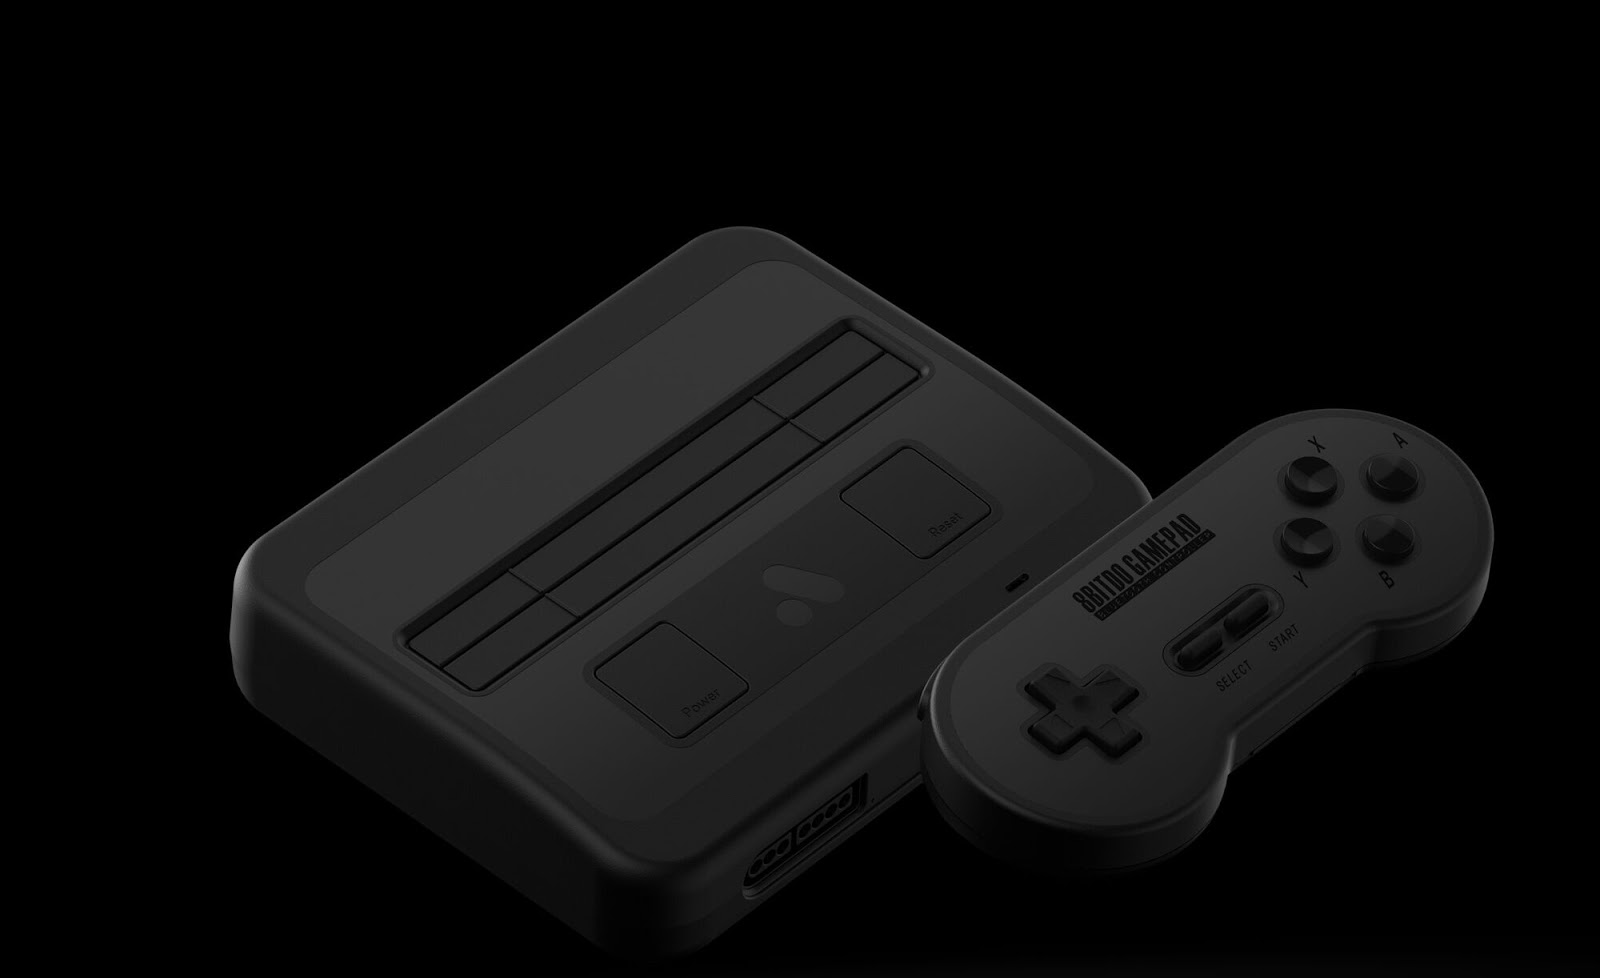 Nerdly Pleasures: The Analogue Super Nt - The Day After Preview